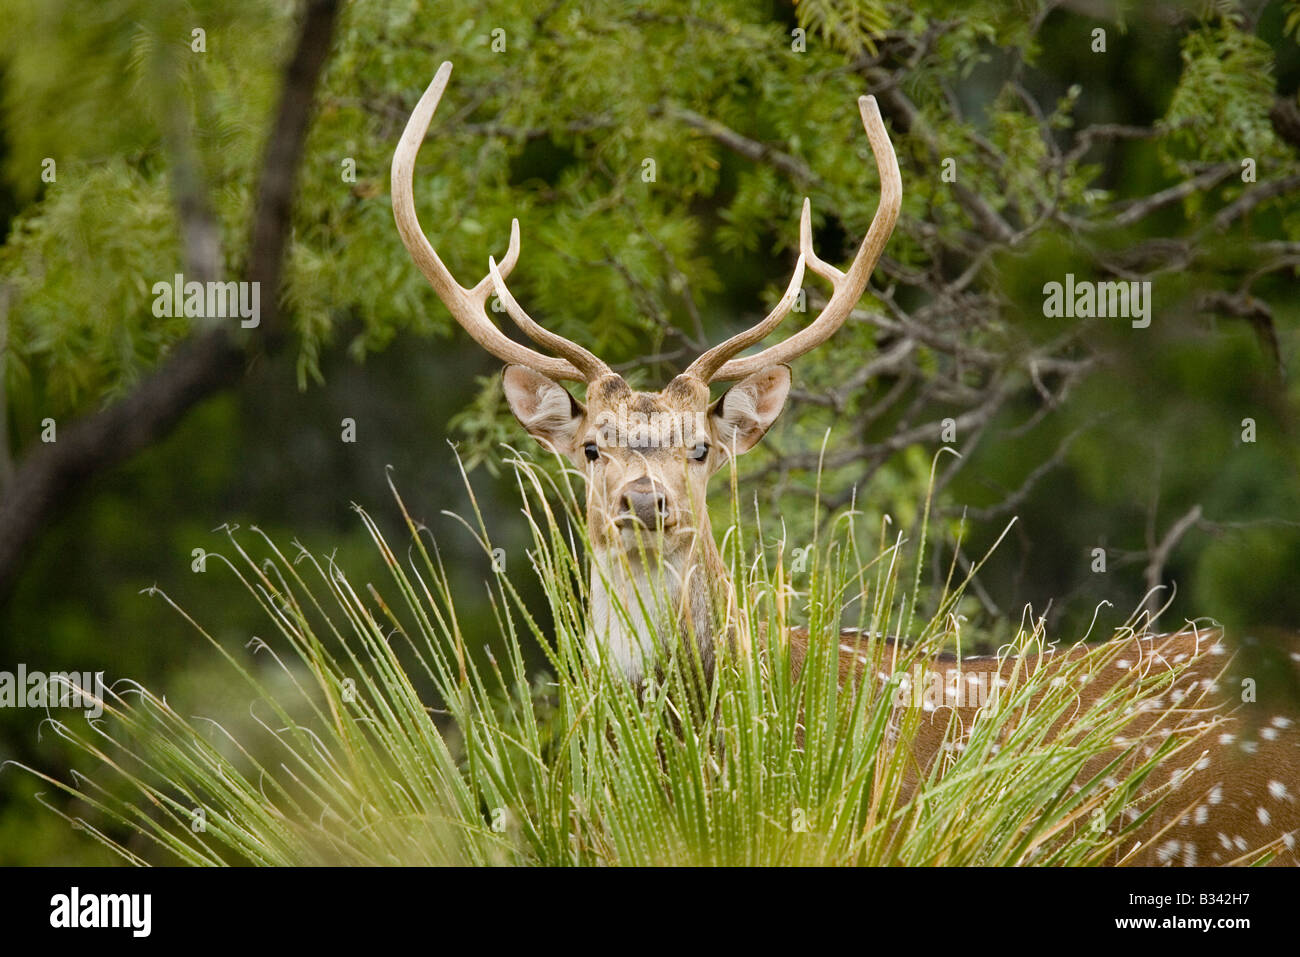 Axis Deer Cervus axis Ozona Texas United States 12 August Adult Female Immature Moschidae CAPTIVE - Stock Image